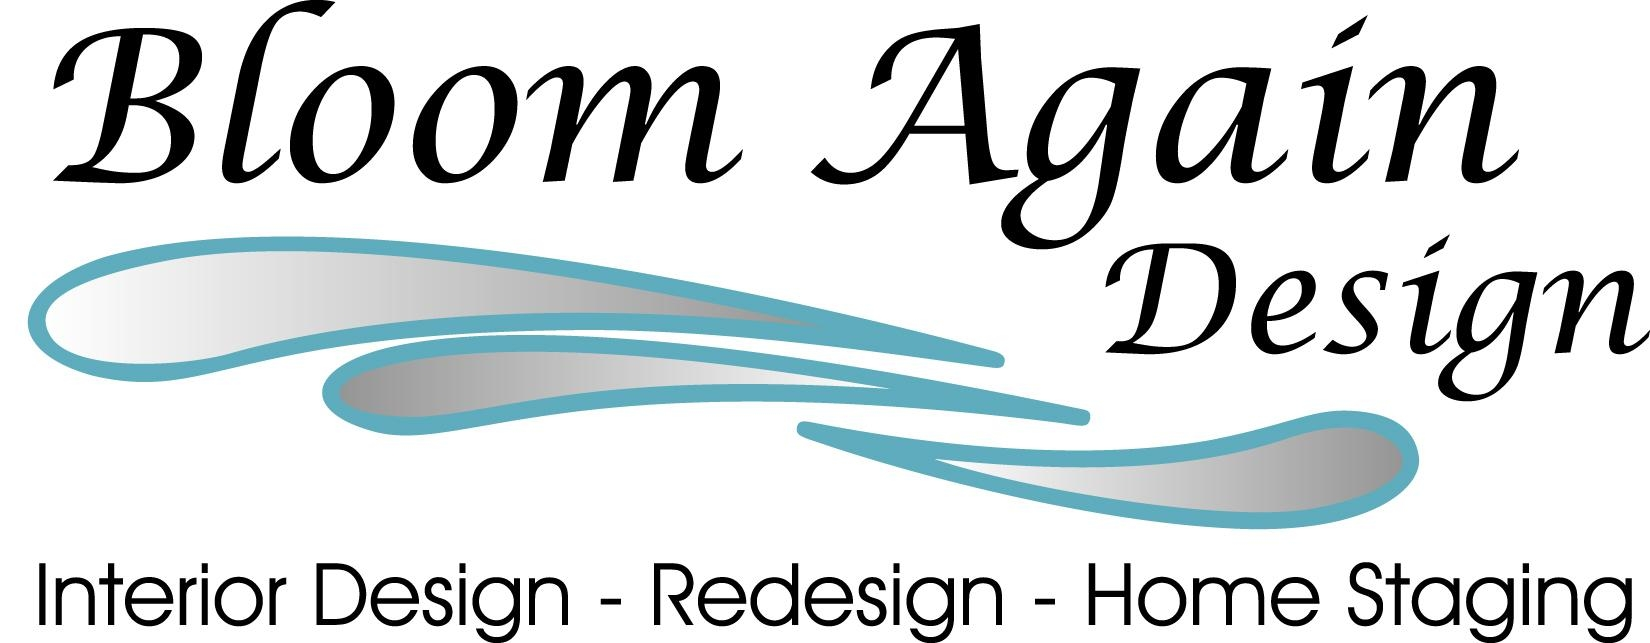 Bloom Again Design In Honolulu HI 96814